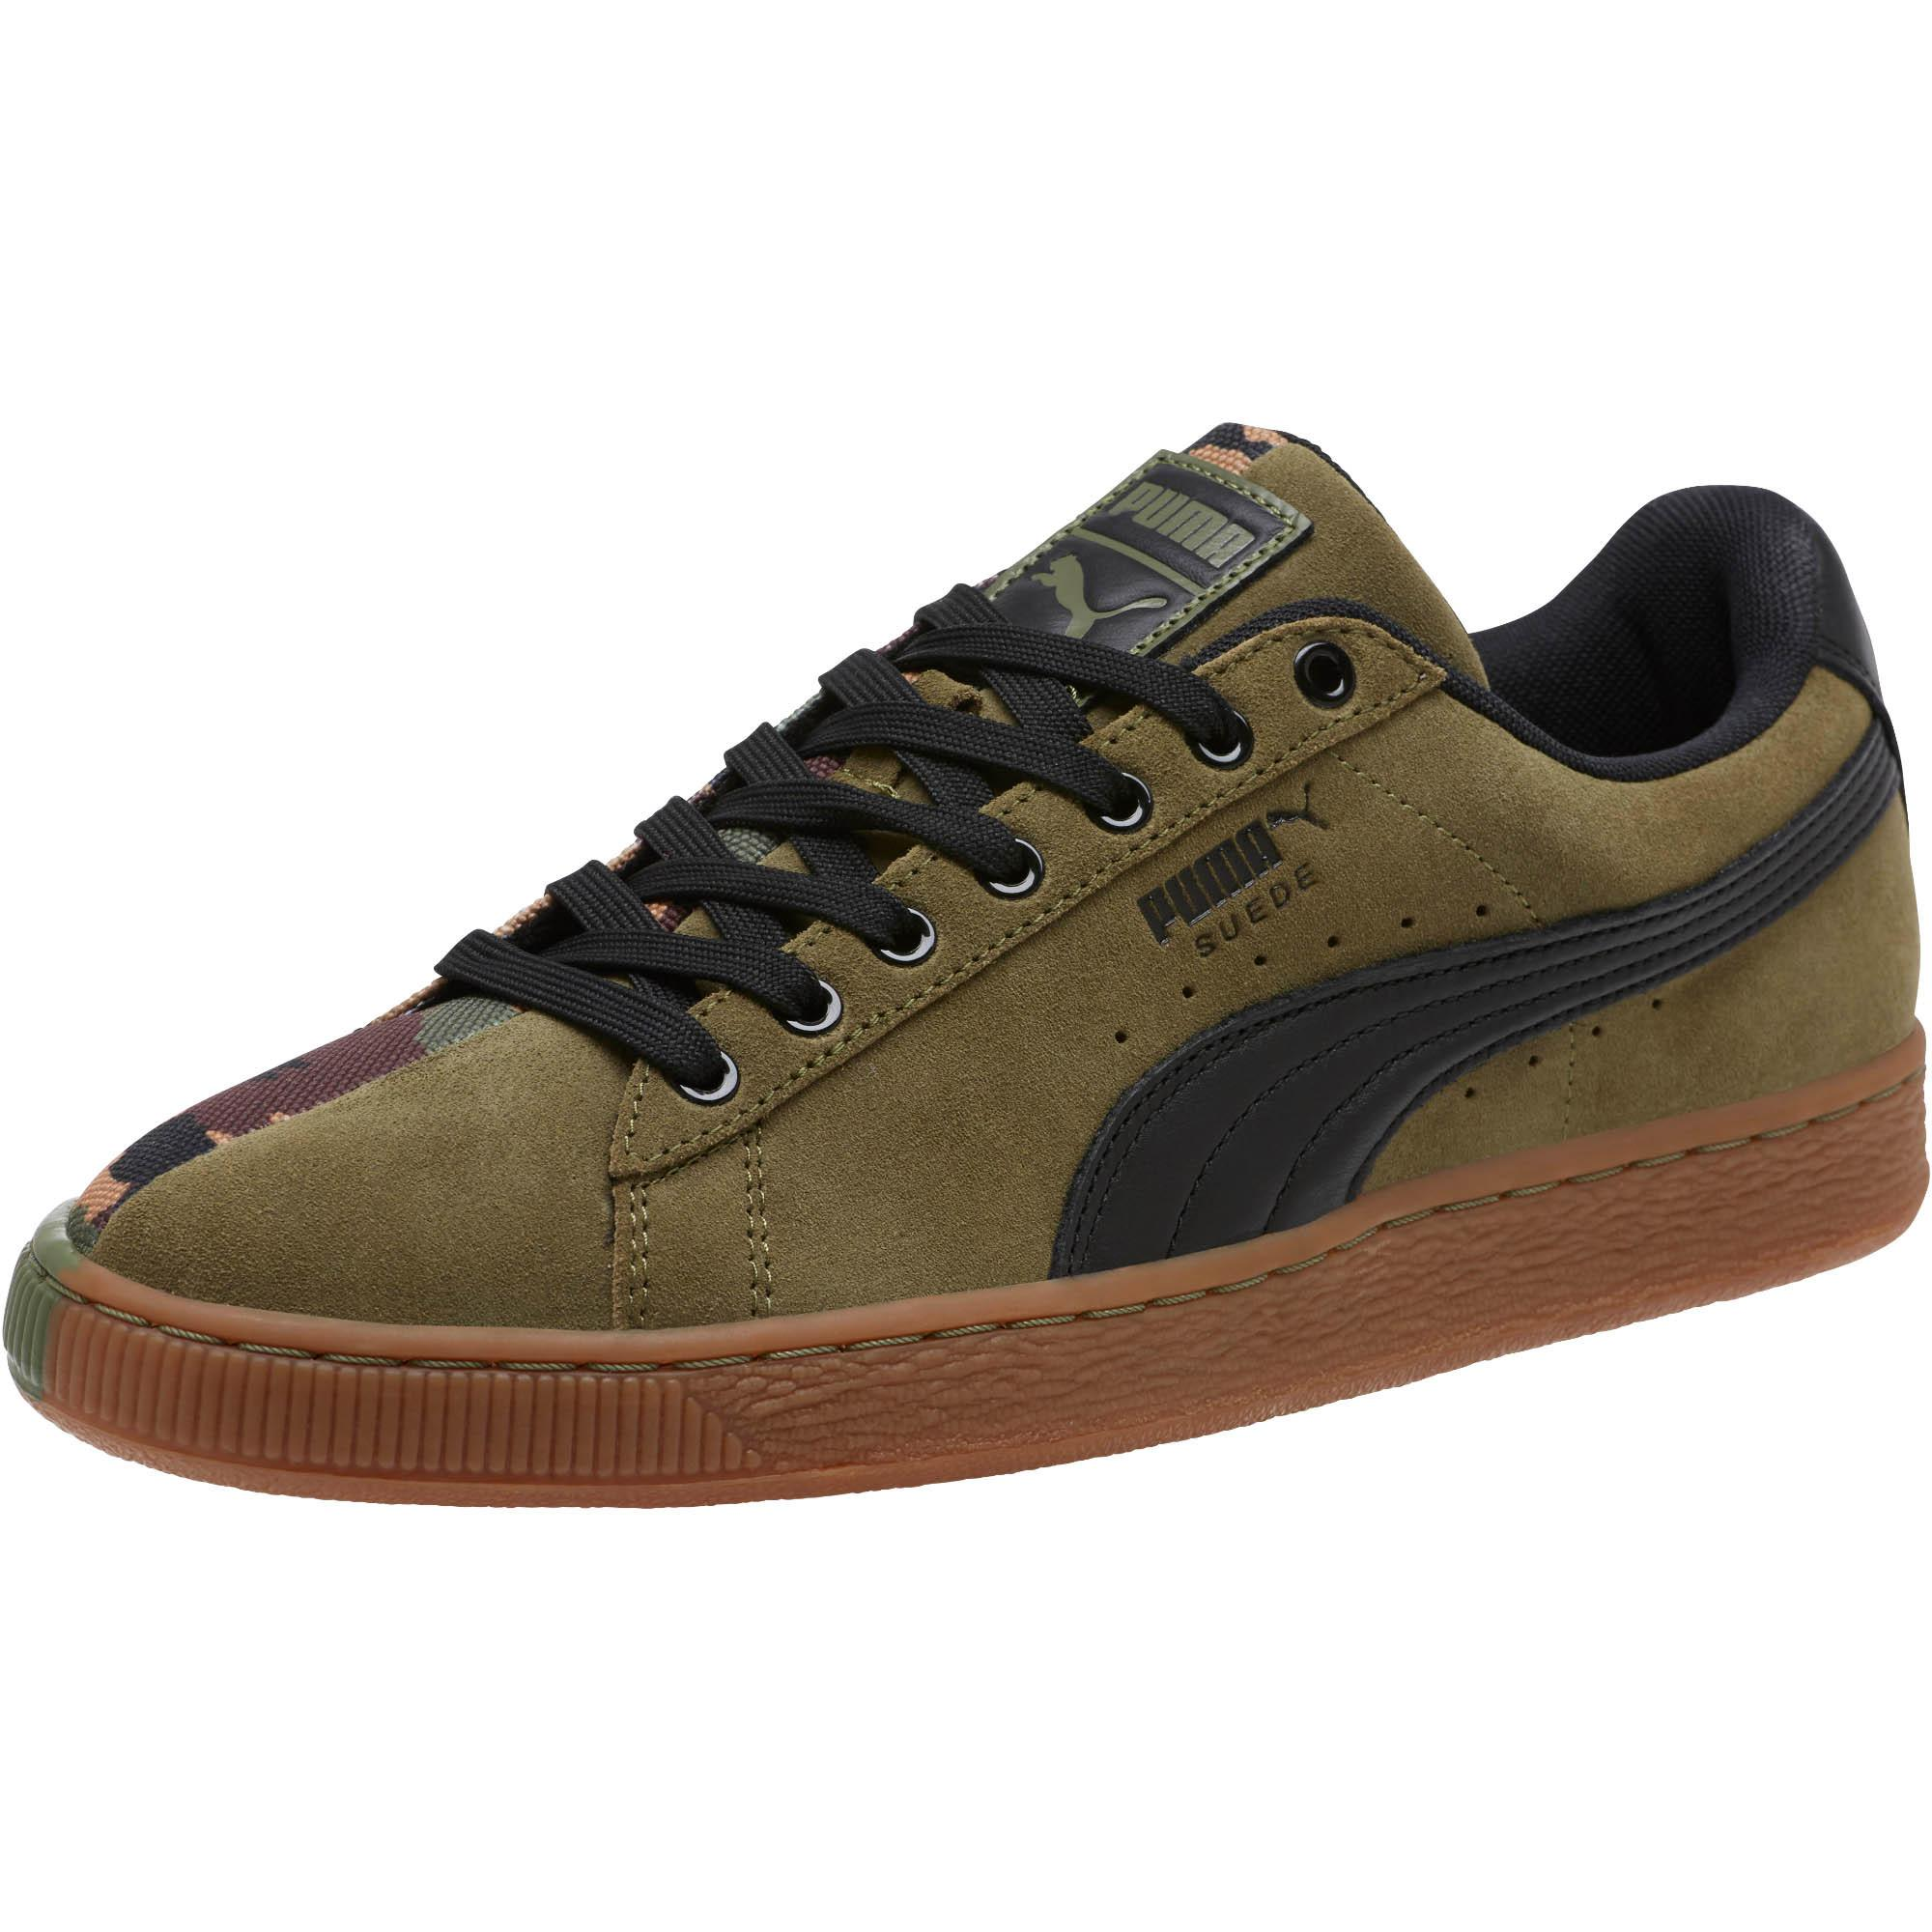 171f2c9f659 Lyst - PUMA Suede Sp Sneakers in Black for Men